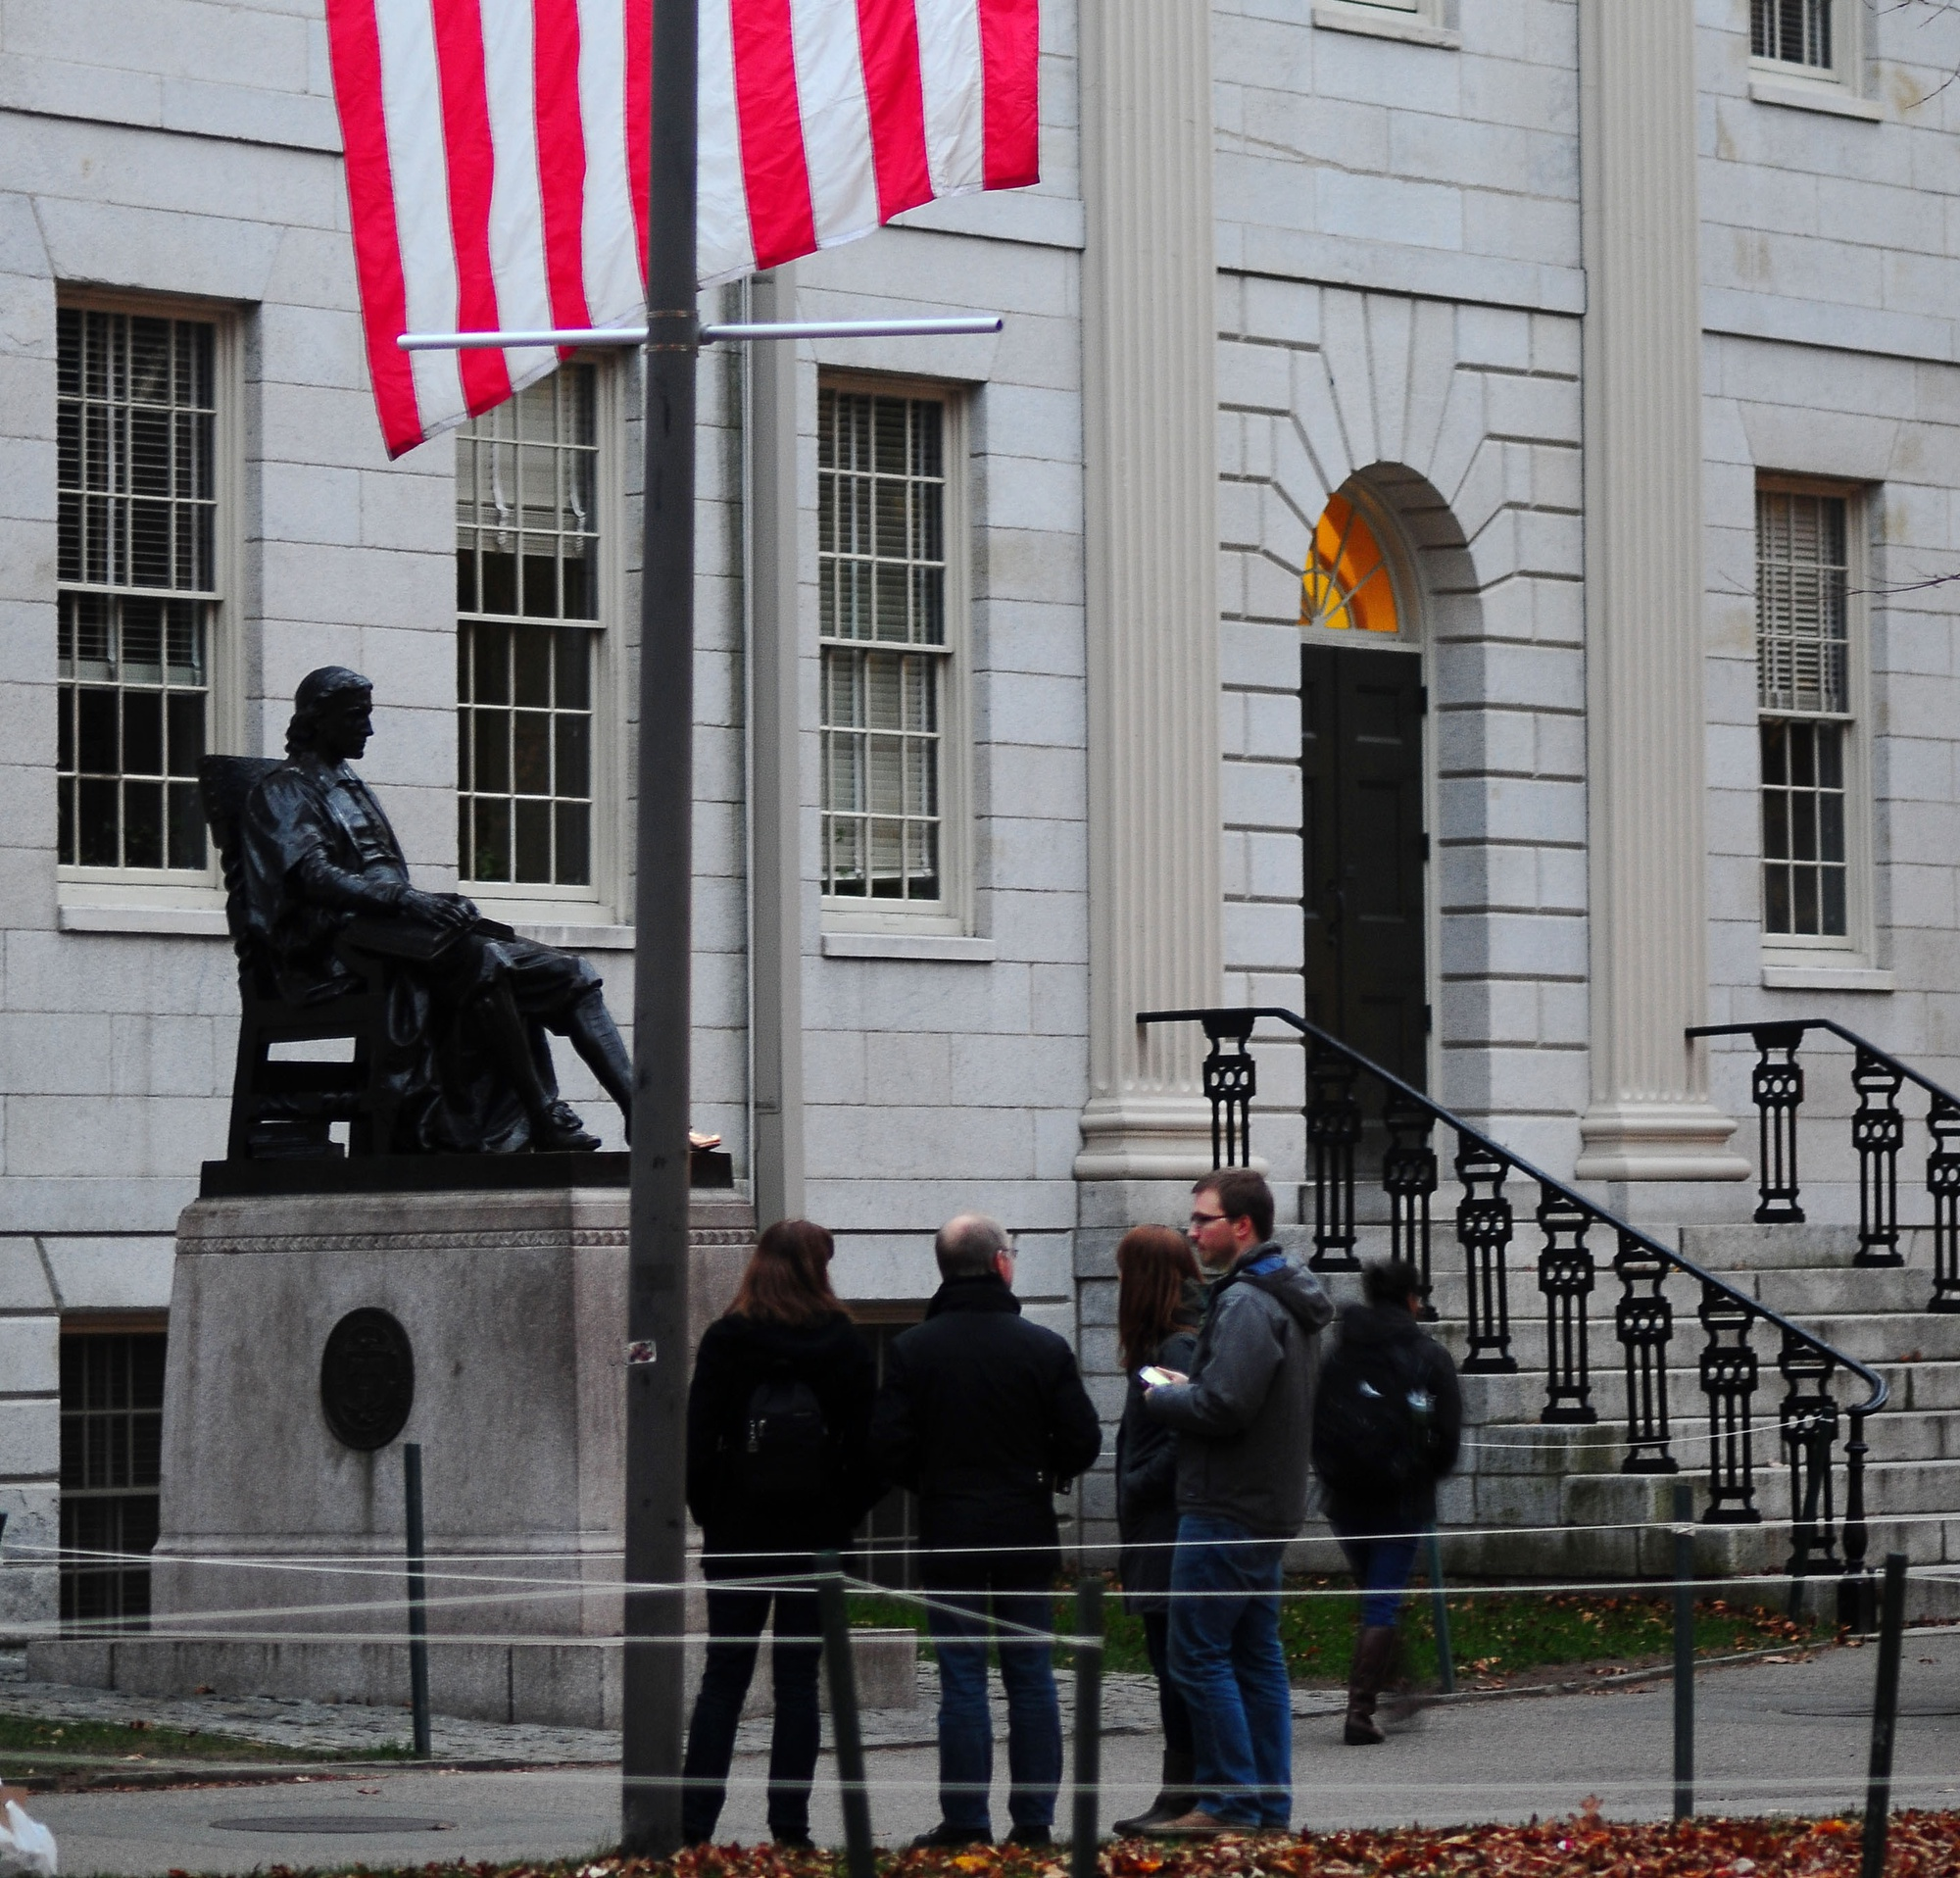 University Hall and other administrative buildings were closed on Monday in honor of Veterans Day.